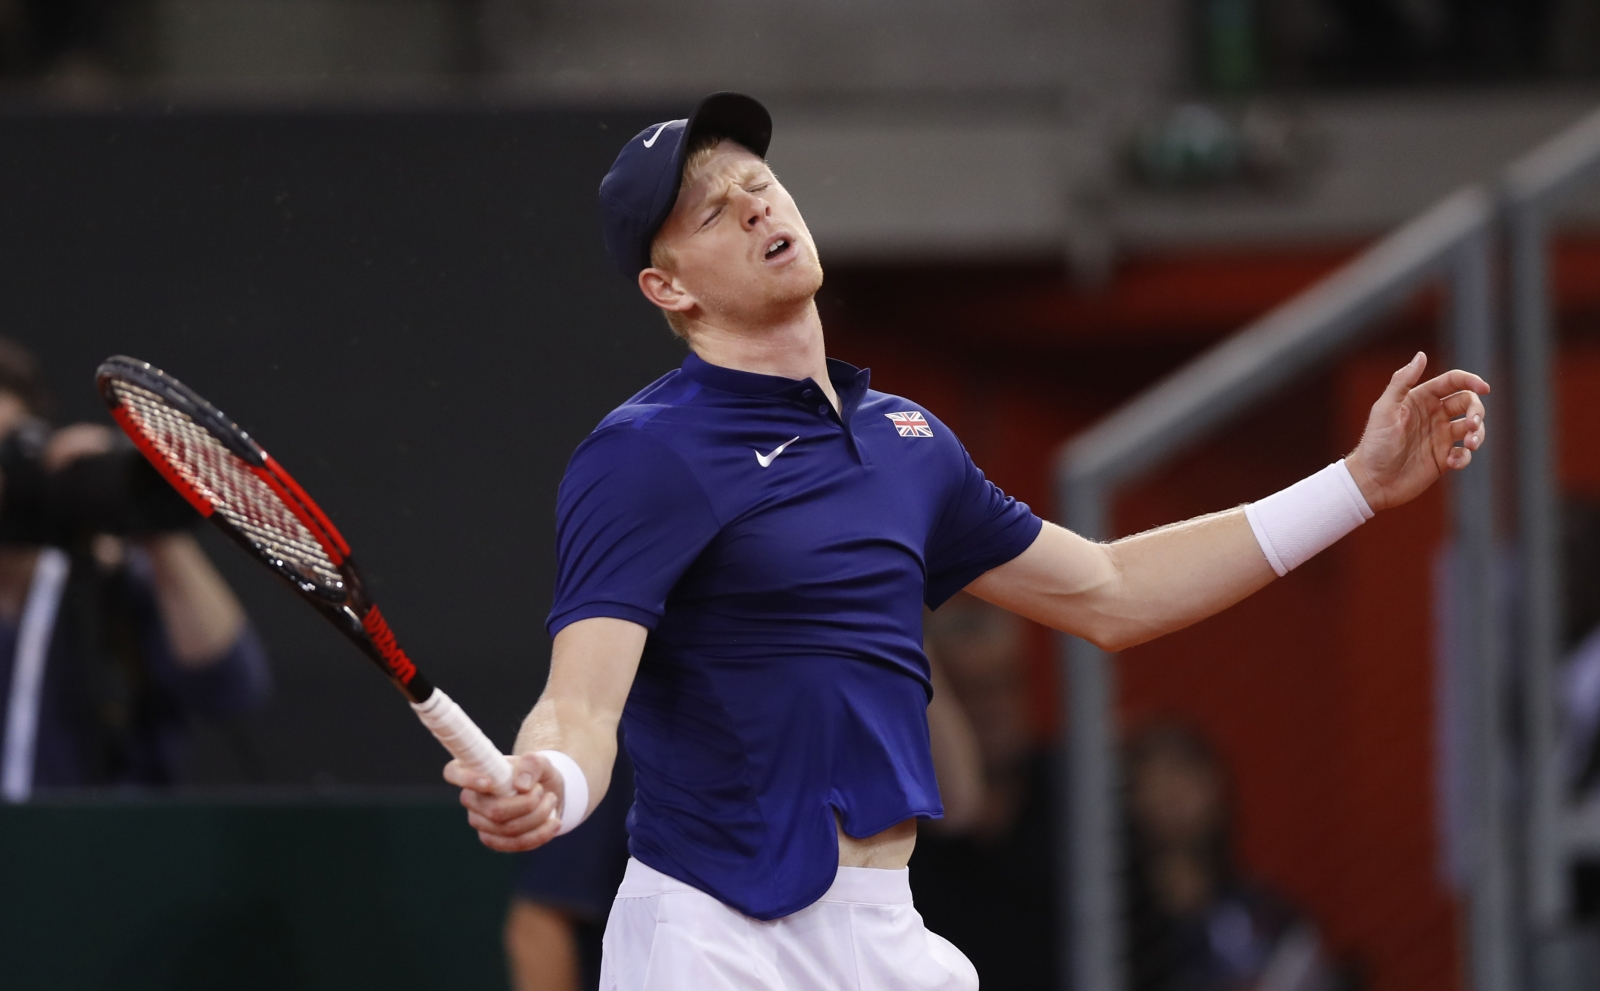 edmund single personals This is the first time there hasn't been a british singles player in the second week at wimbledon since 2007  second set: edmund 6-4, 3-5 djokovic.